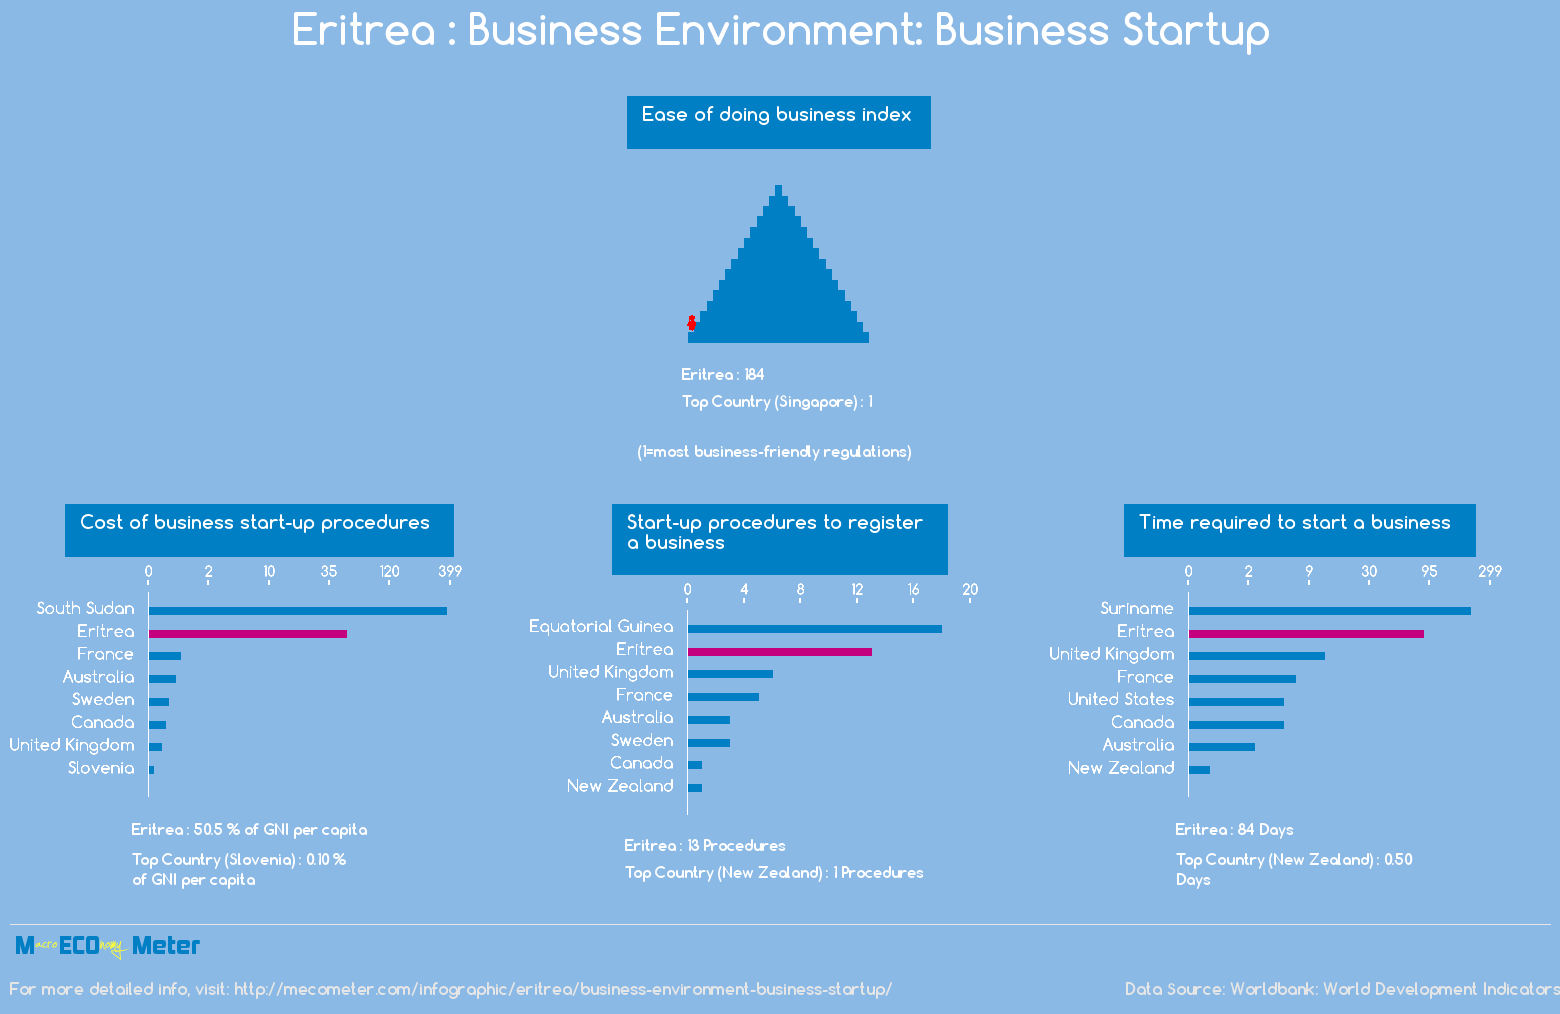 Eritrea : Business Environment: Business Startup